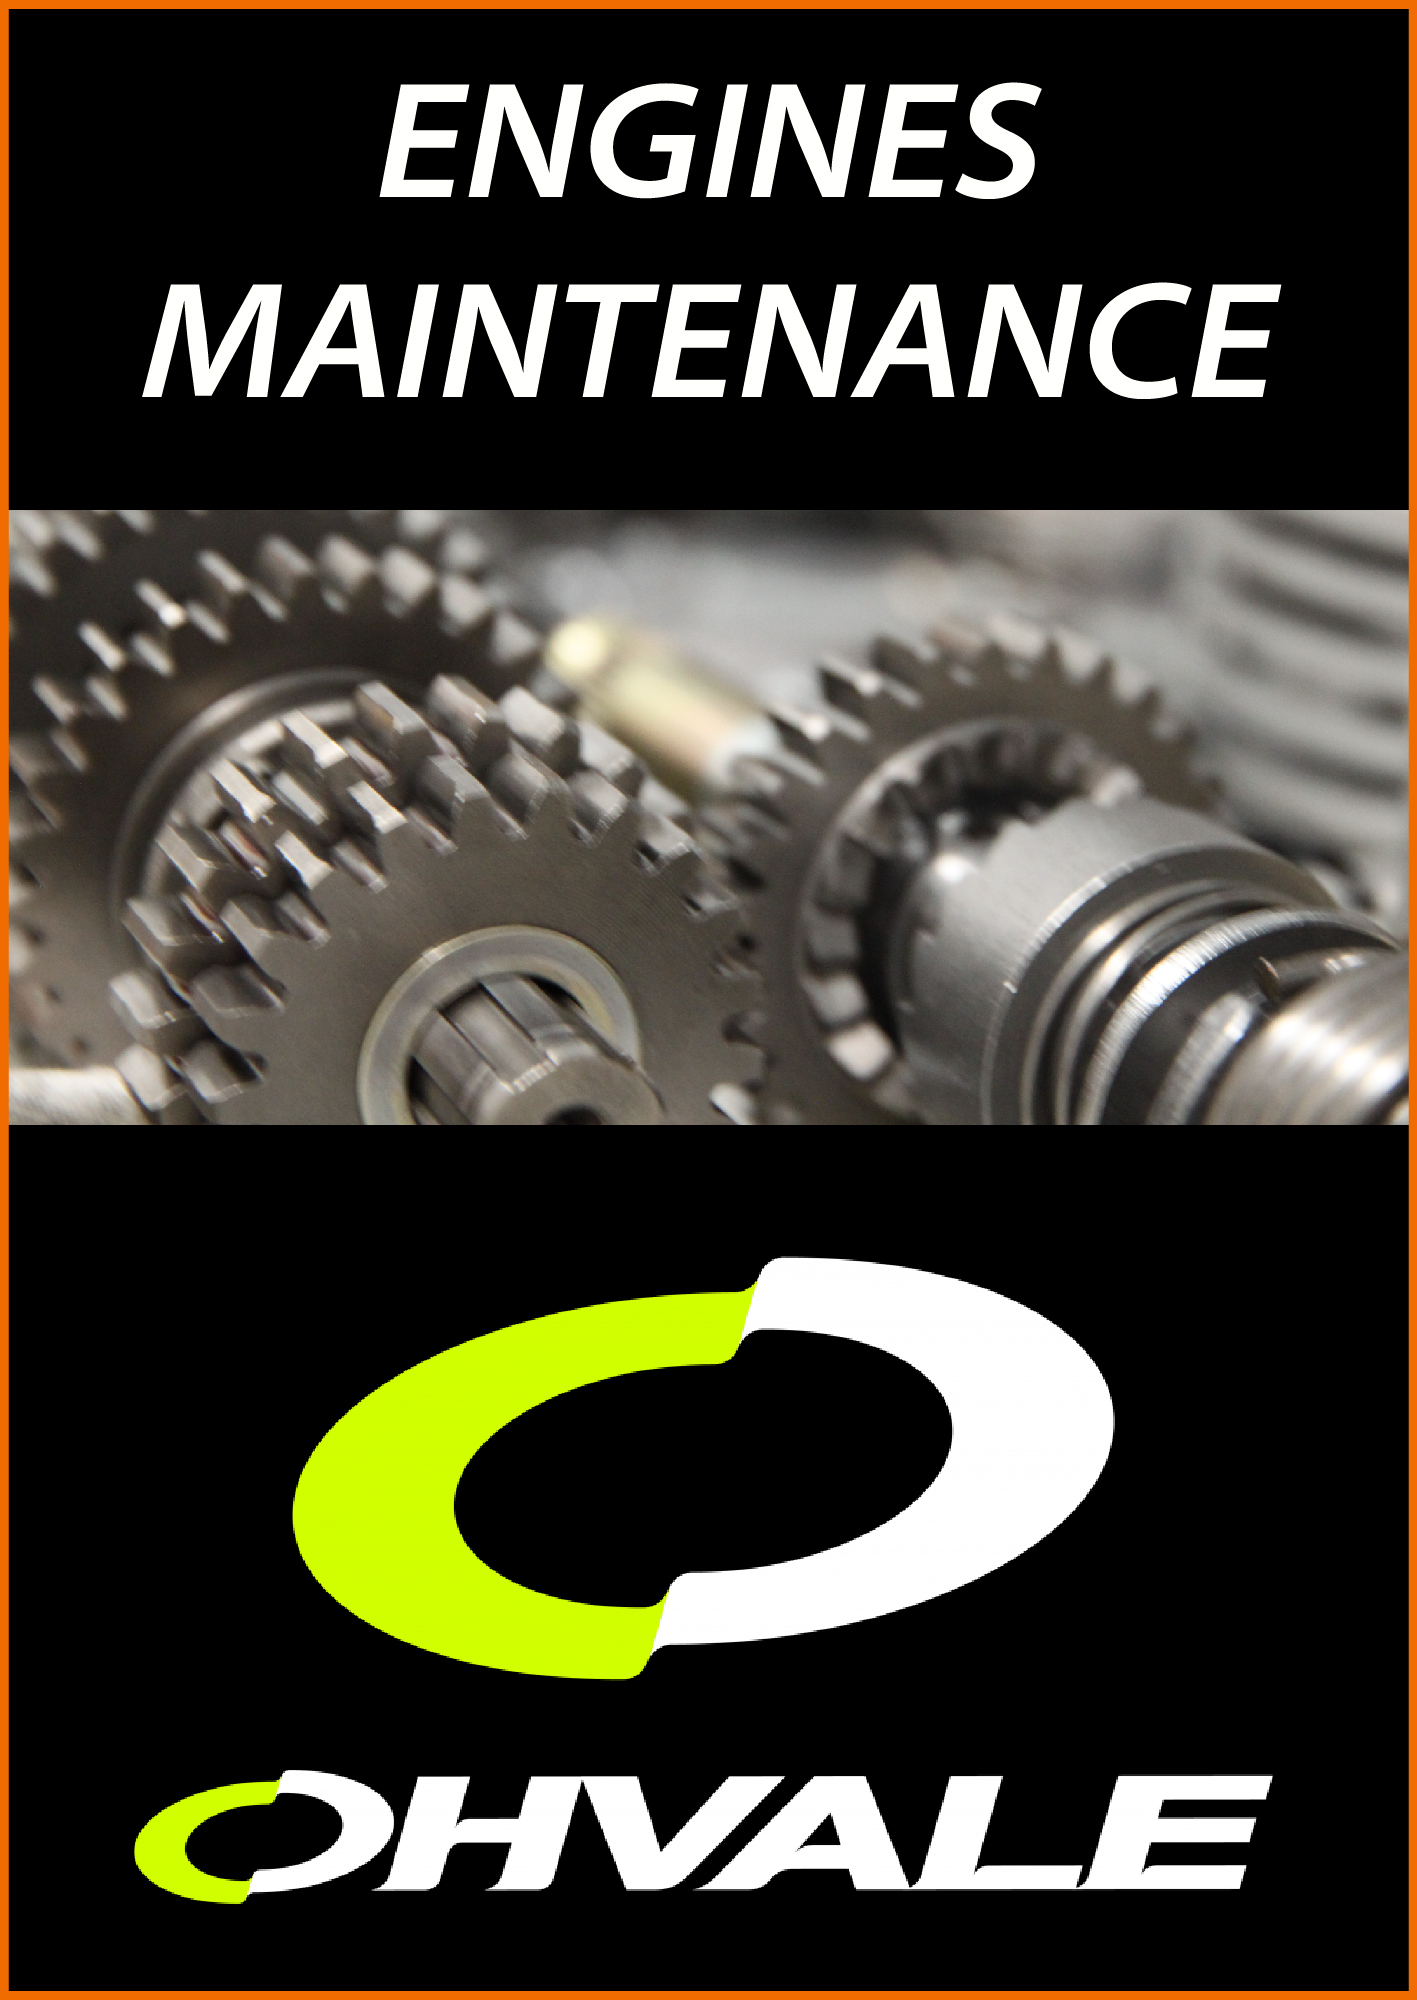 Ohvale engines maintenance